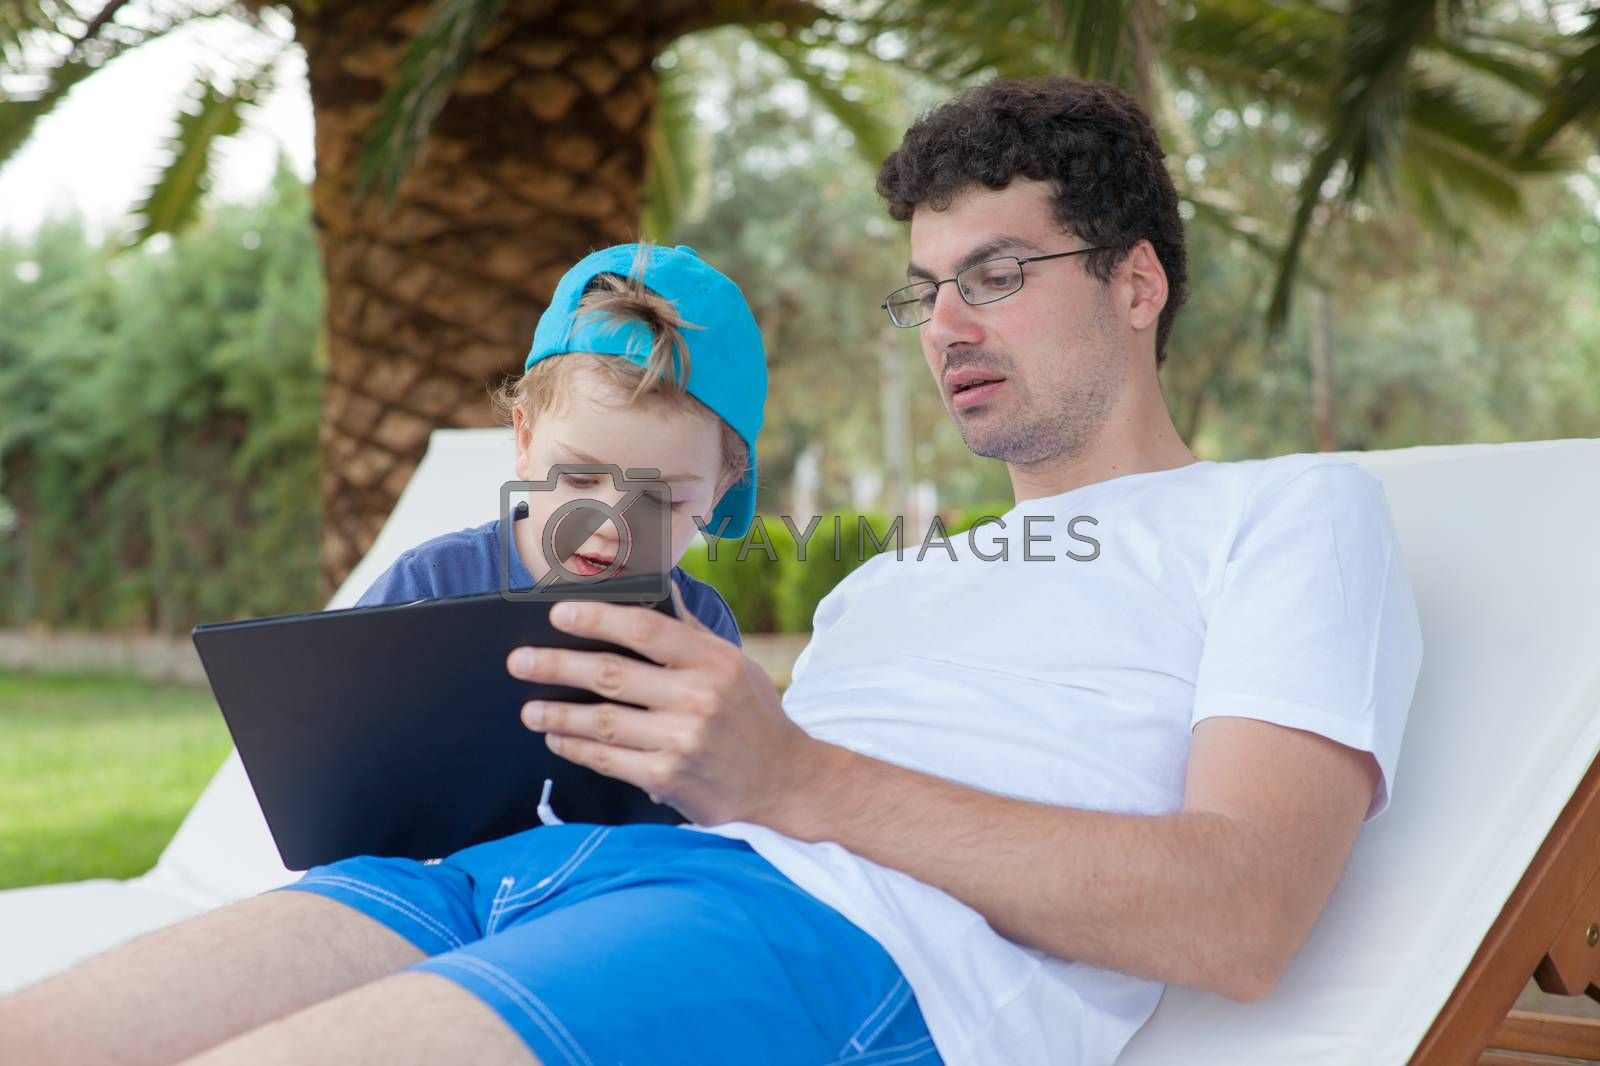 Young father showing something on tablet to his little boy outdoors.